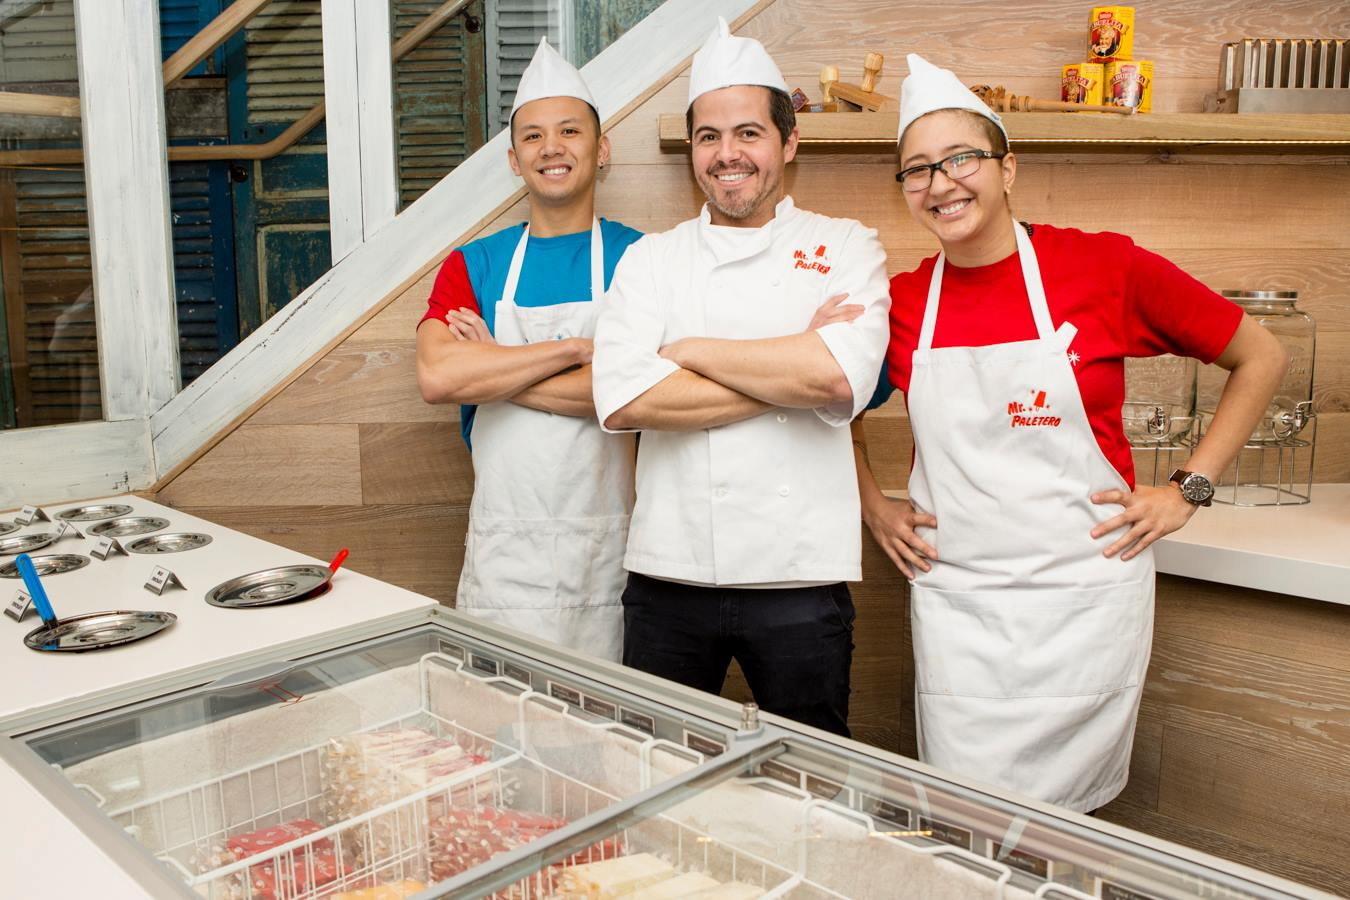 From left to right: Co-founder of ChillBro! Paletas Matt Liang, Juan Pablo,and one of the staff at ChillBro! Paletas